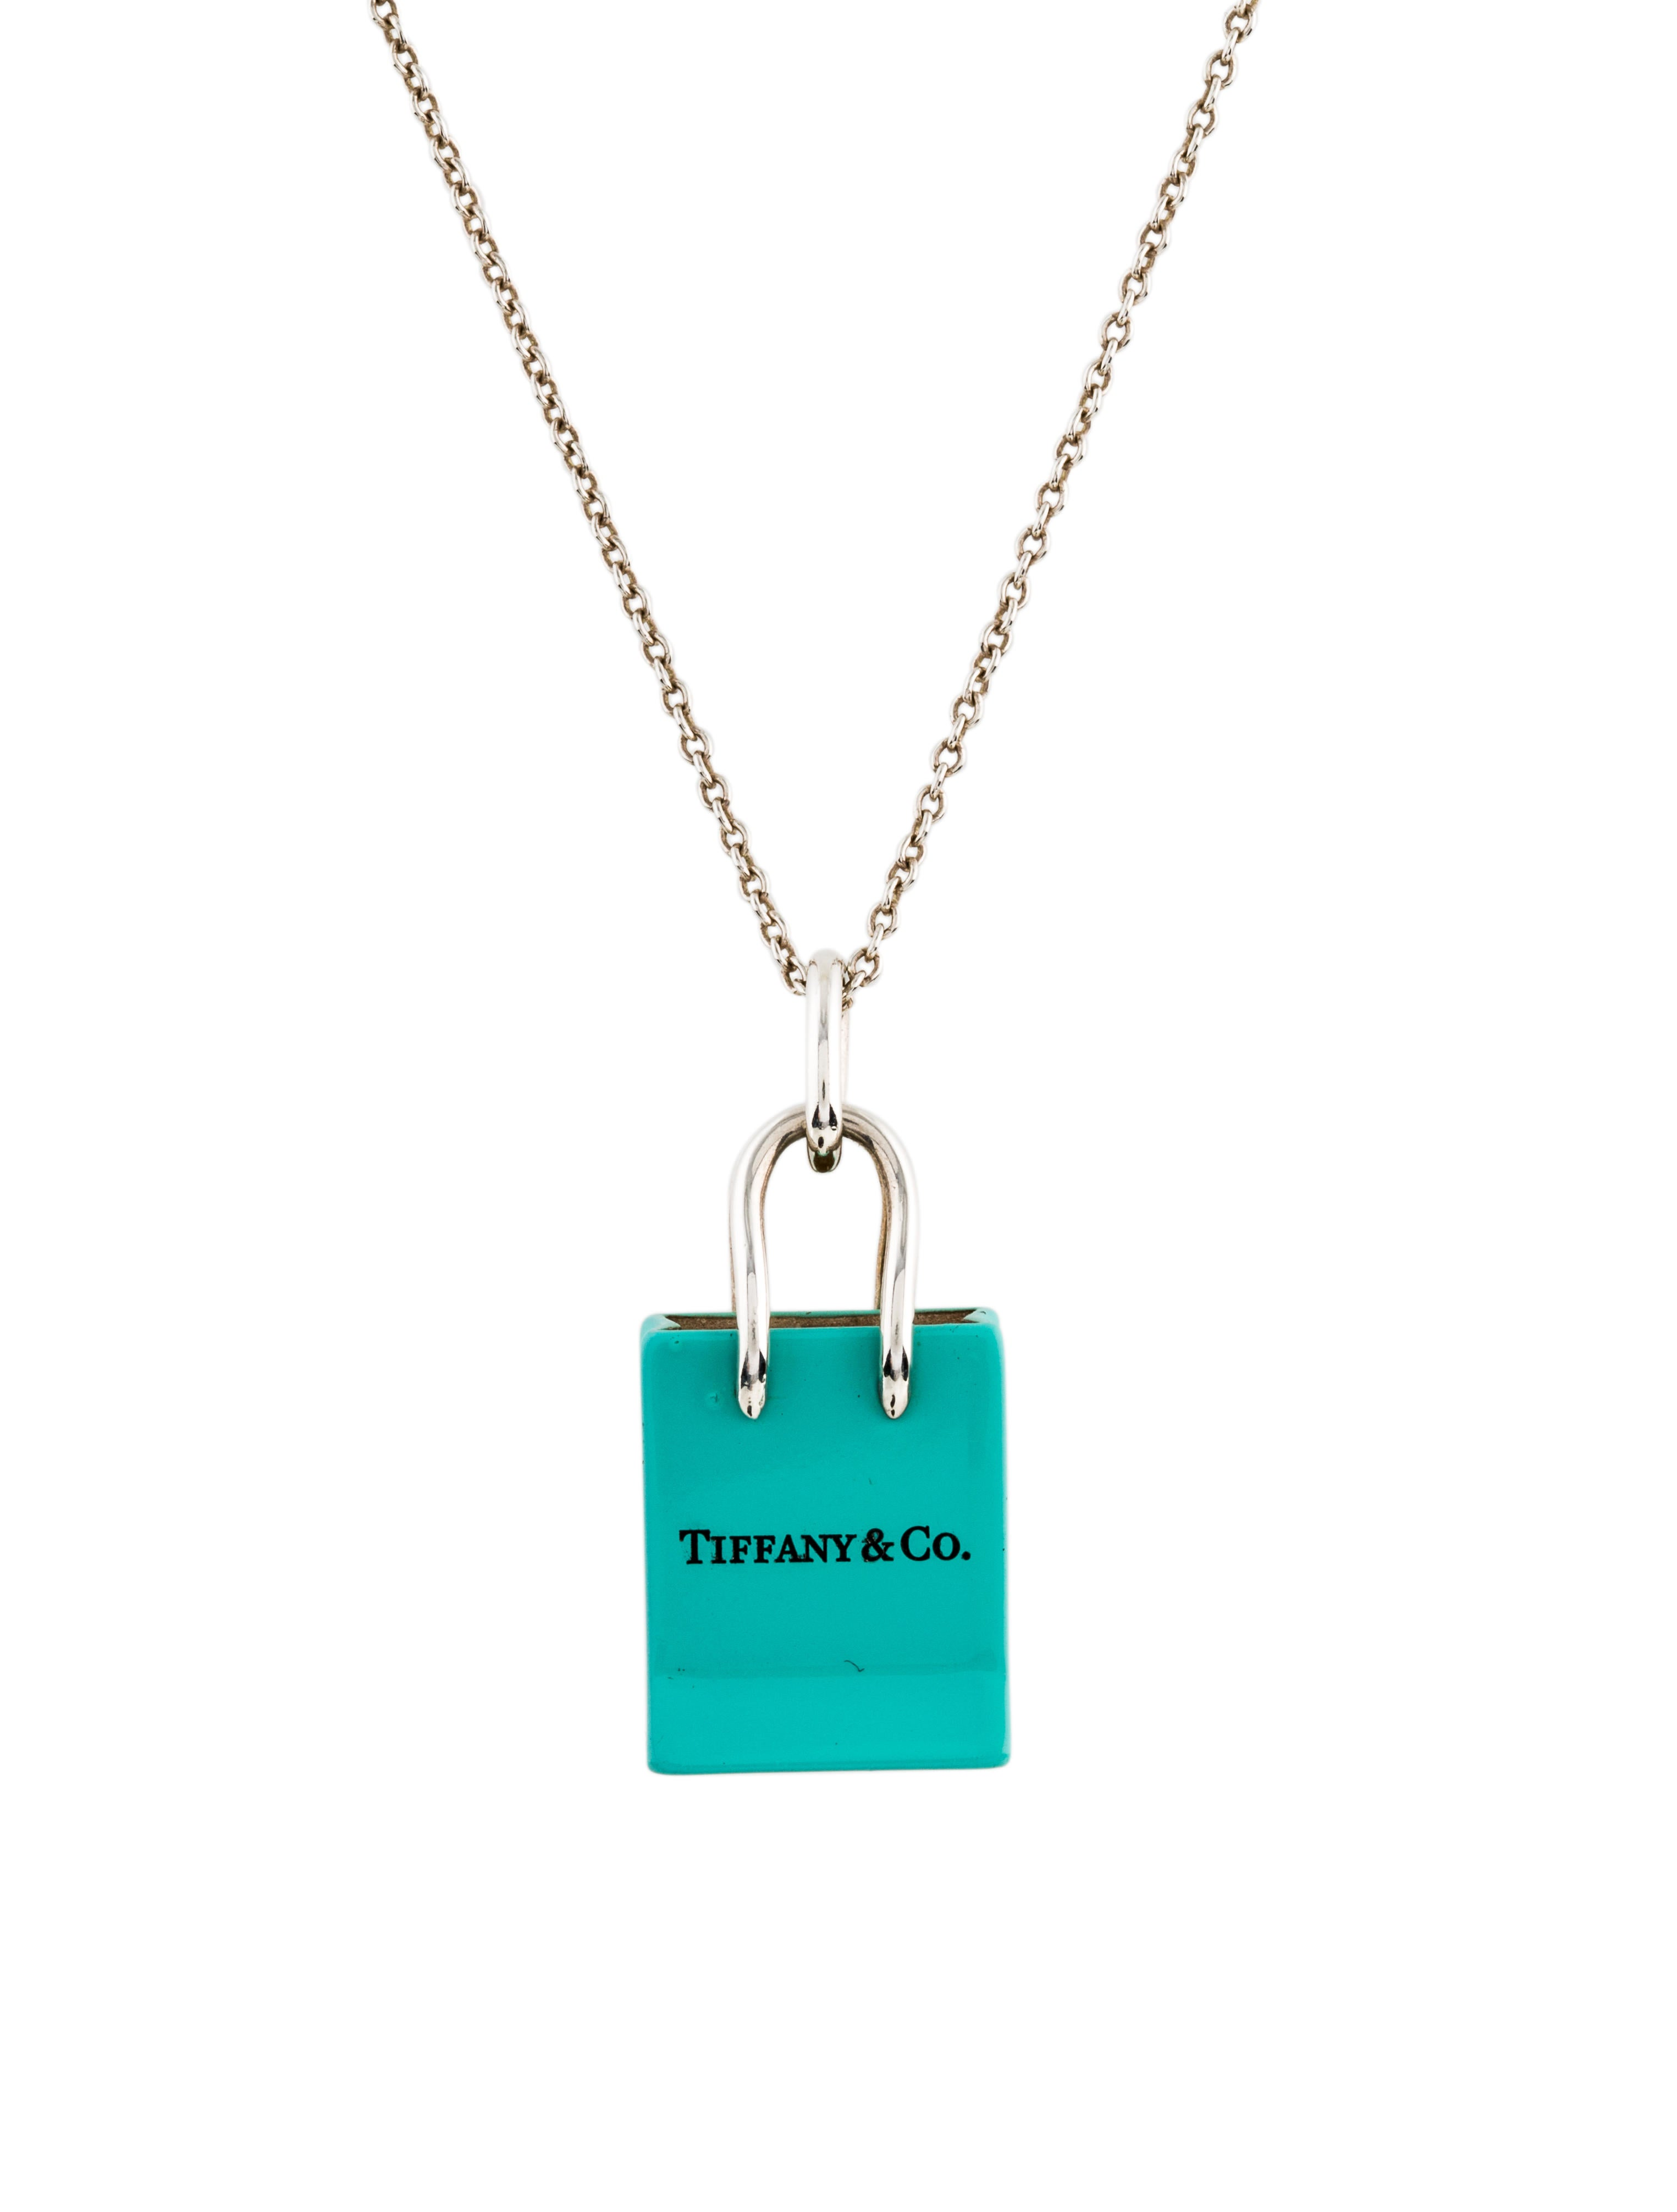 10f1b4e321 Tiffany & Co. Shopping Bag Charm Necklace - Necklaces - TIF63577 ...